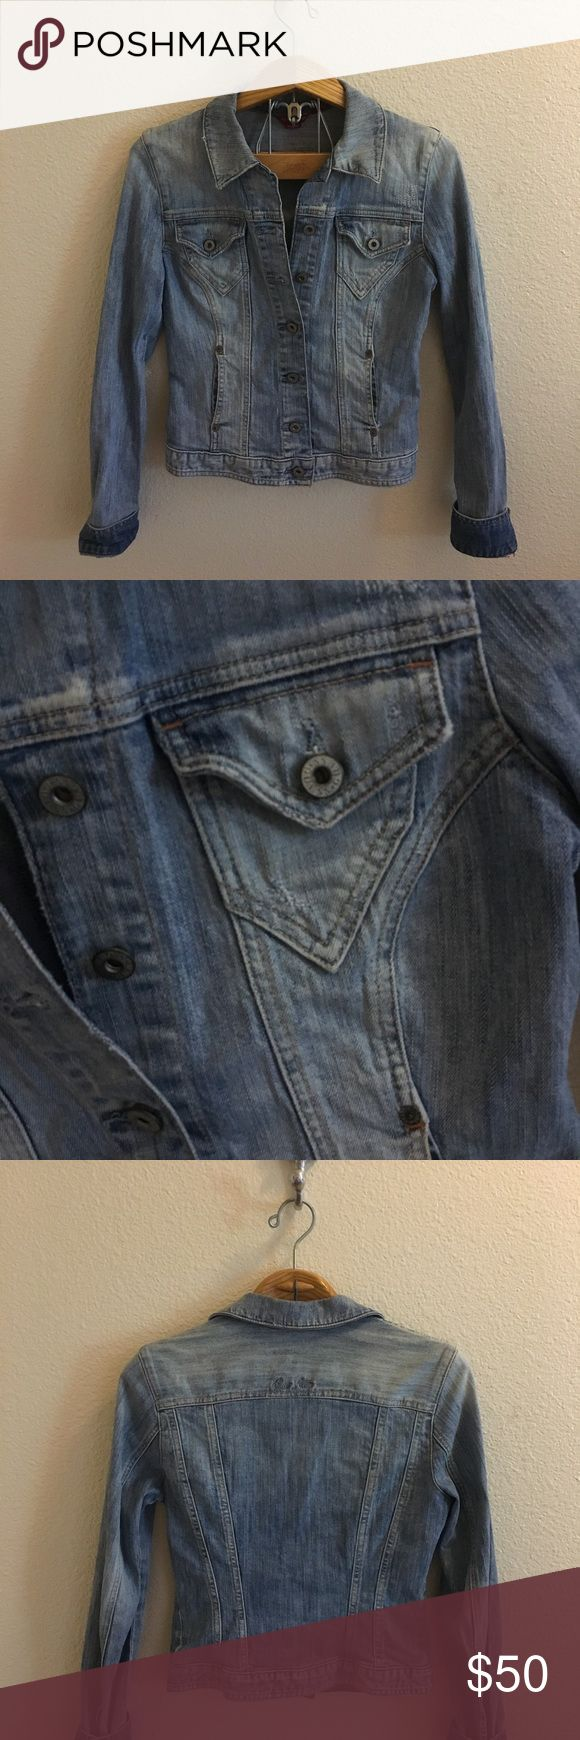 Vintage Guess Denim Jacket Size medium blue denim jacket by Guess. Vintage, medium wash. Pockets on the front. Buttons up the front as well. No flaws or signs of wear. Sturdy, thick Denim material. I ship daily - excluding Sundays and holidays - and I store items in a pet free, smoke free environment. Open to offers; bundles discounted! Guess Jackets & Coats